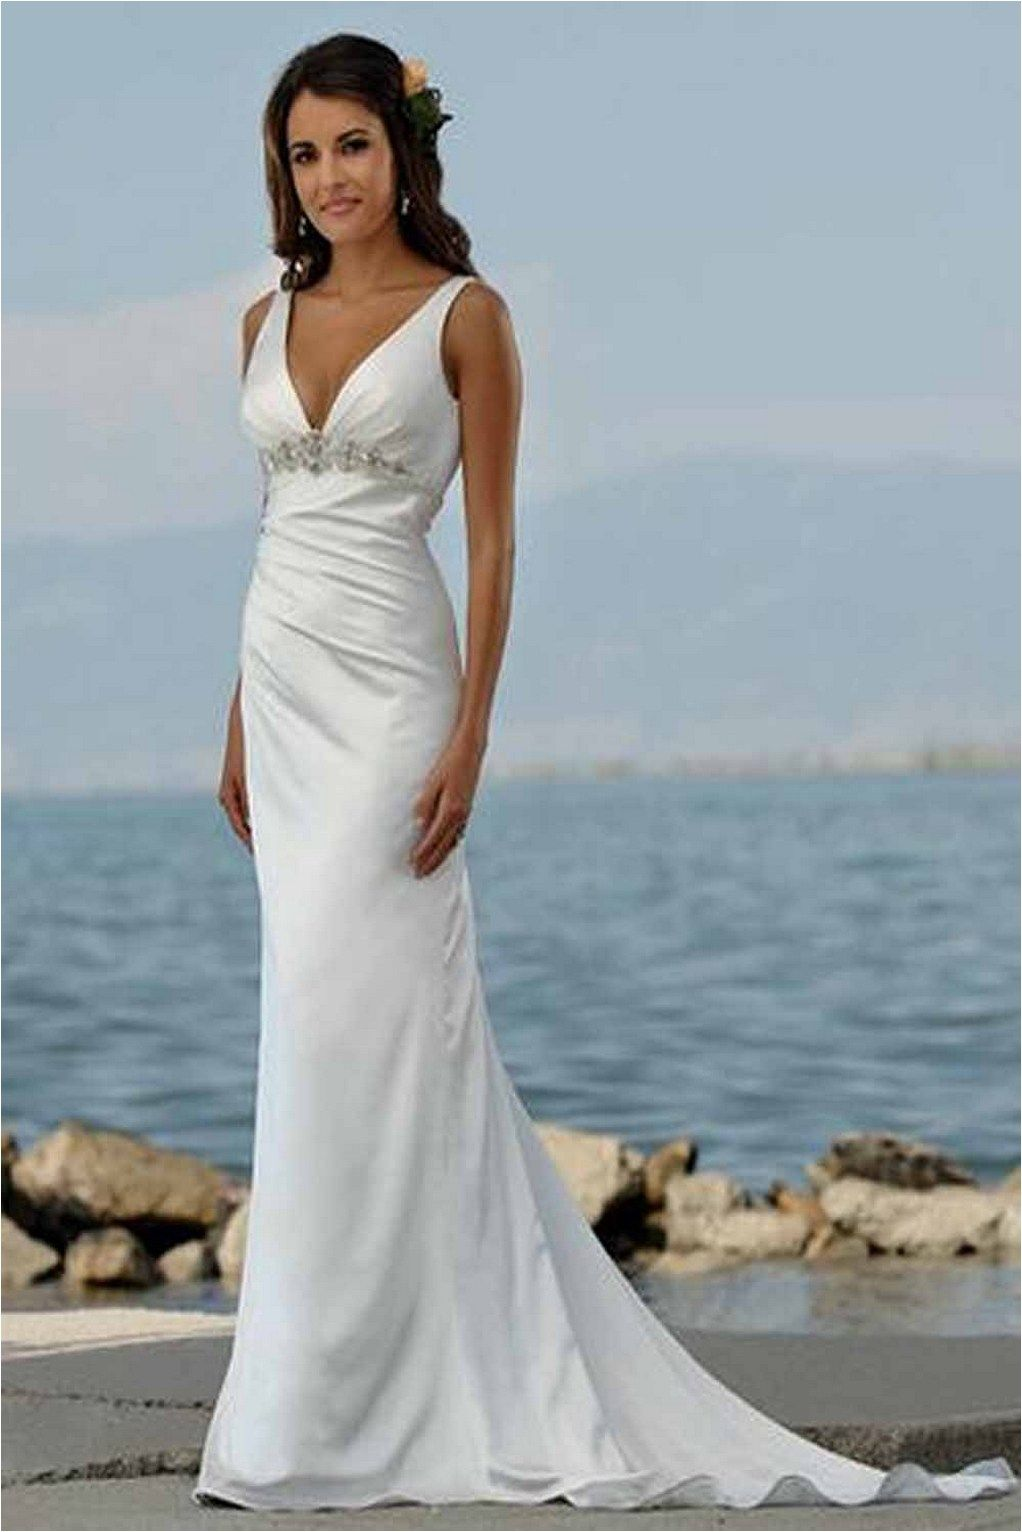 160 simple summer wedding dresses 2017 trends and ideas (151 ...